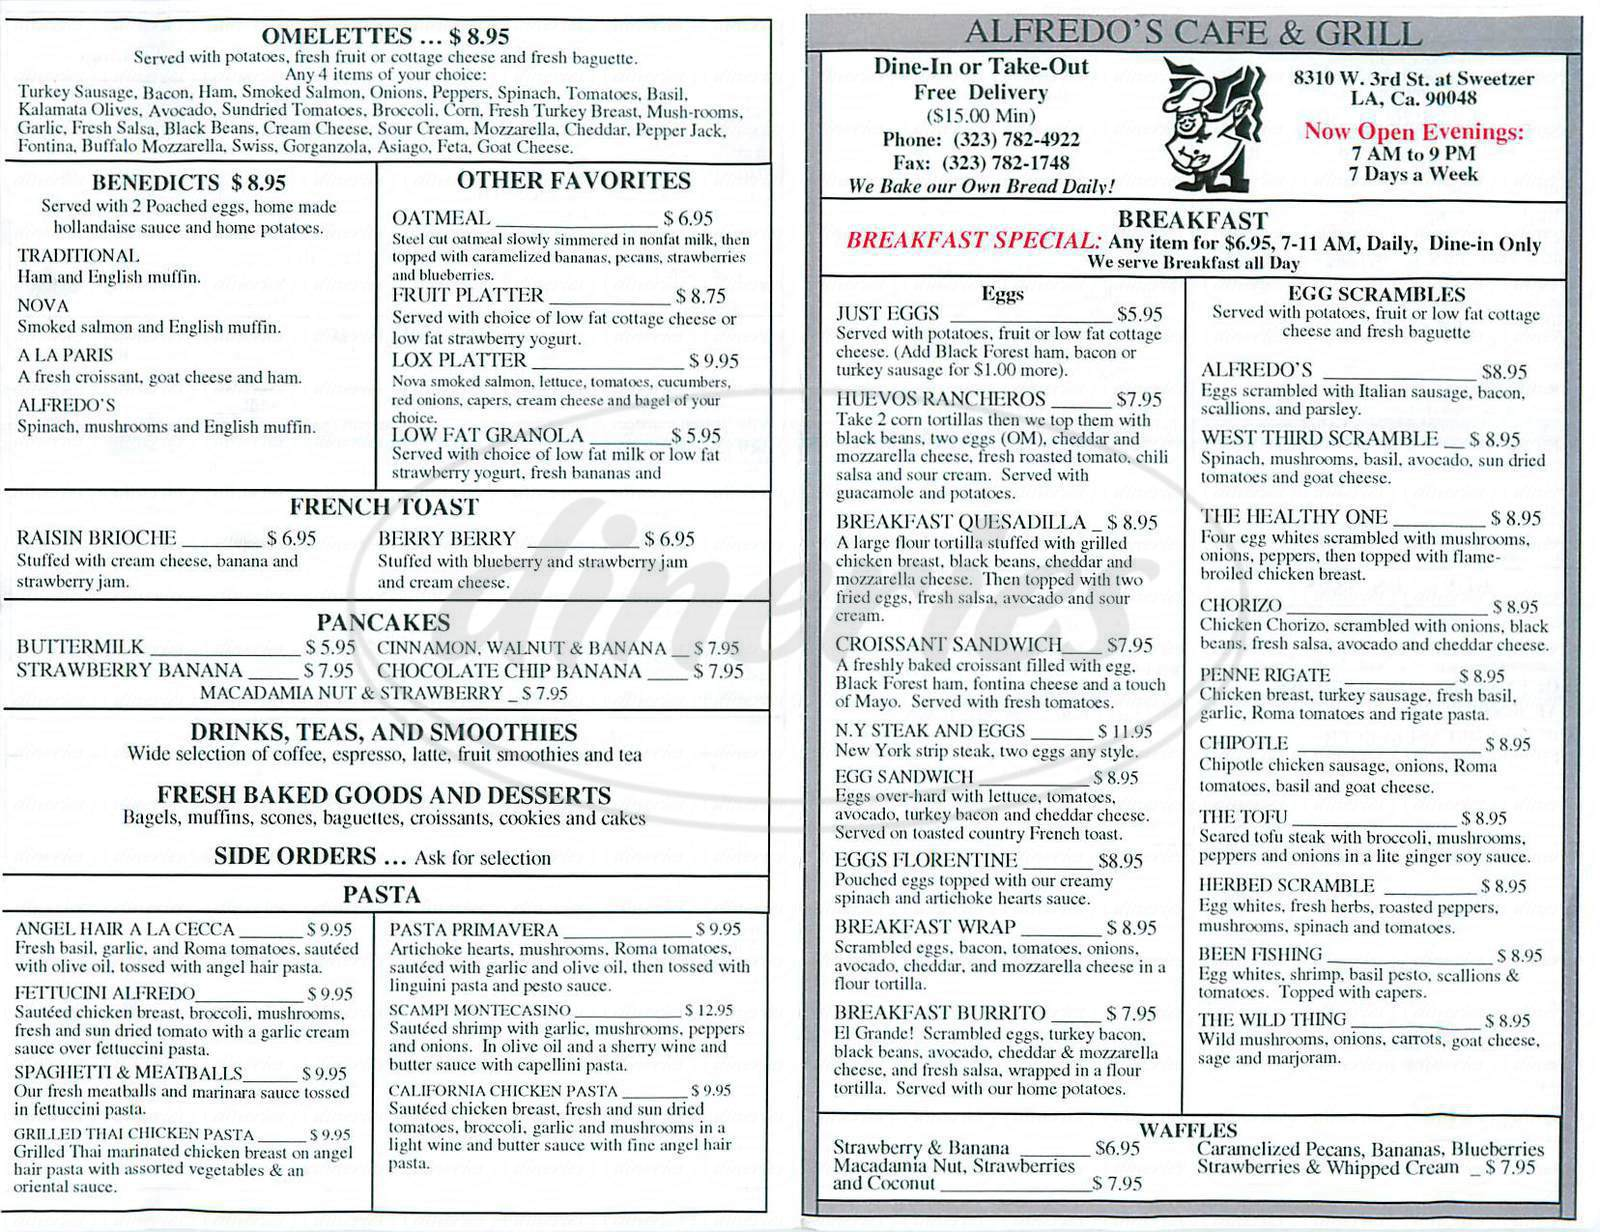 menu for Alfredo's Cafe & Grill